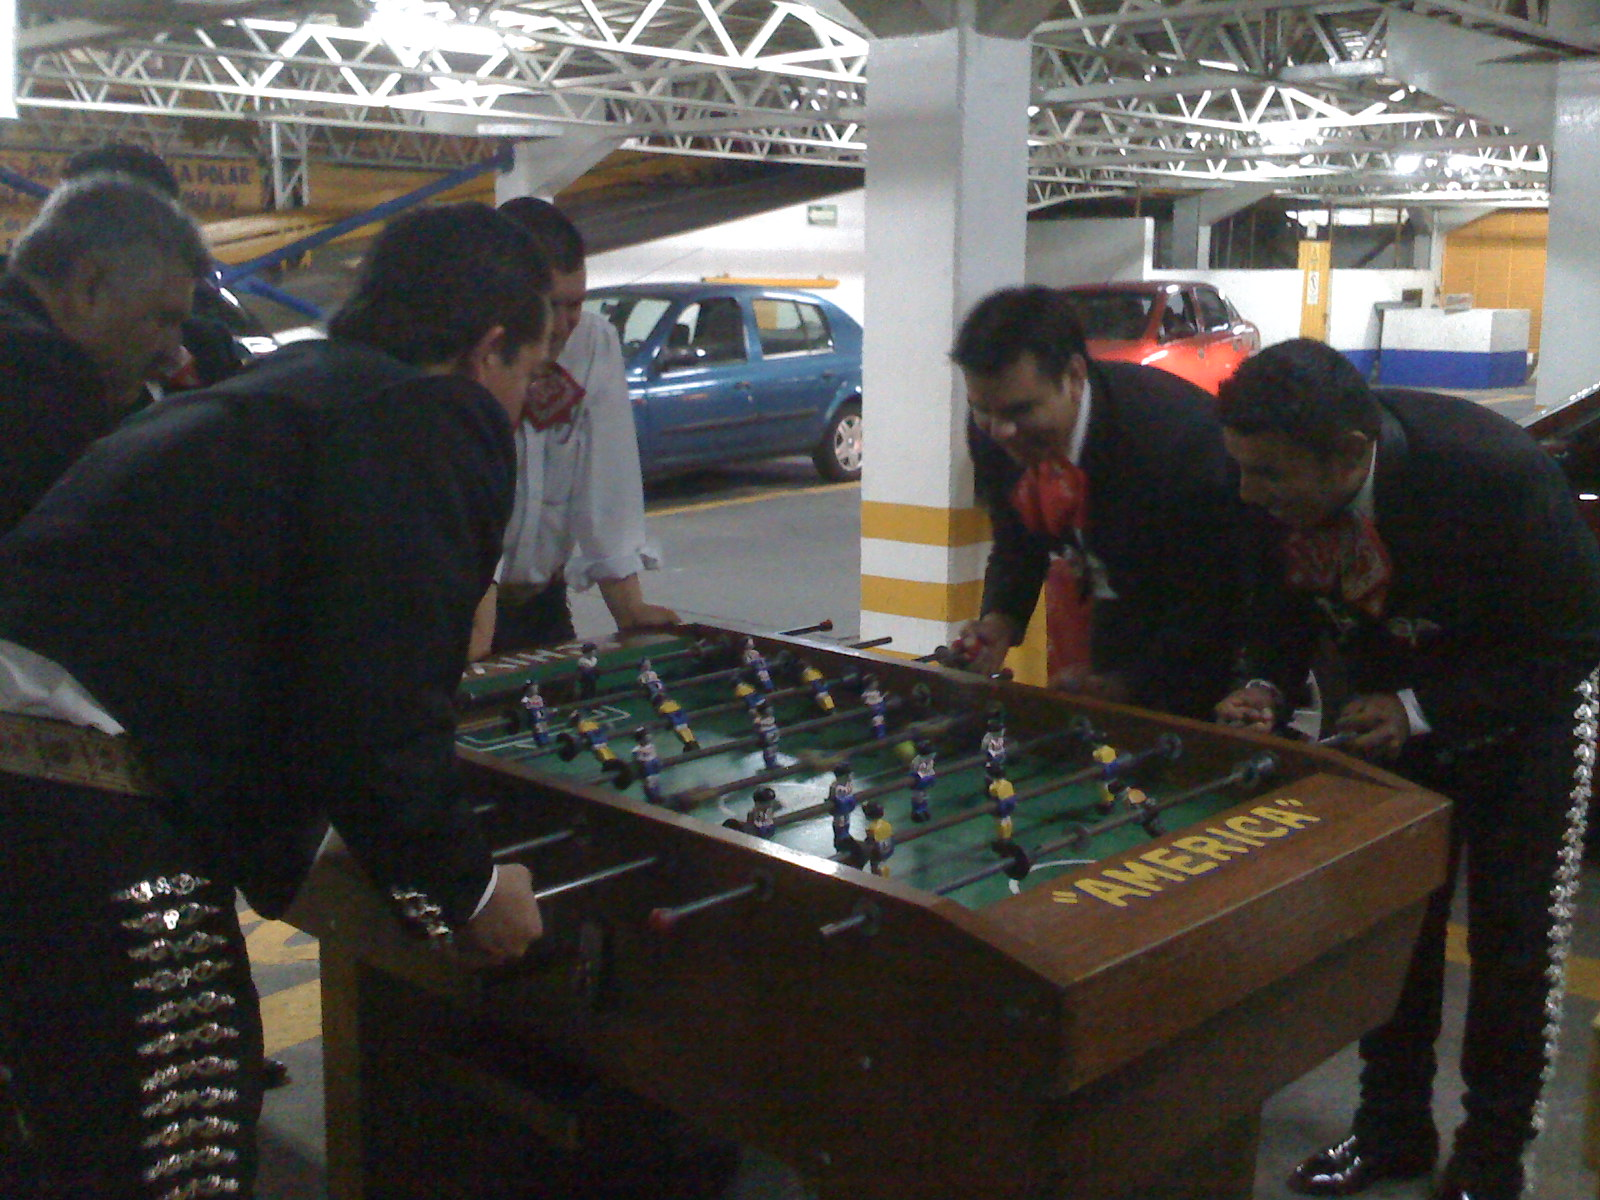 Mariachis playing foosball